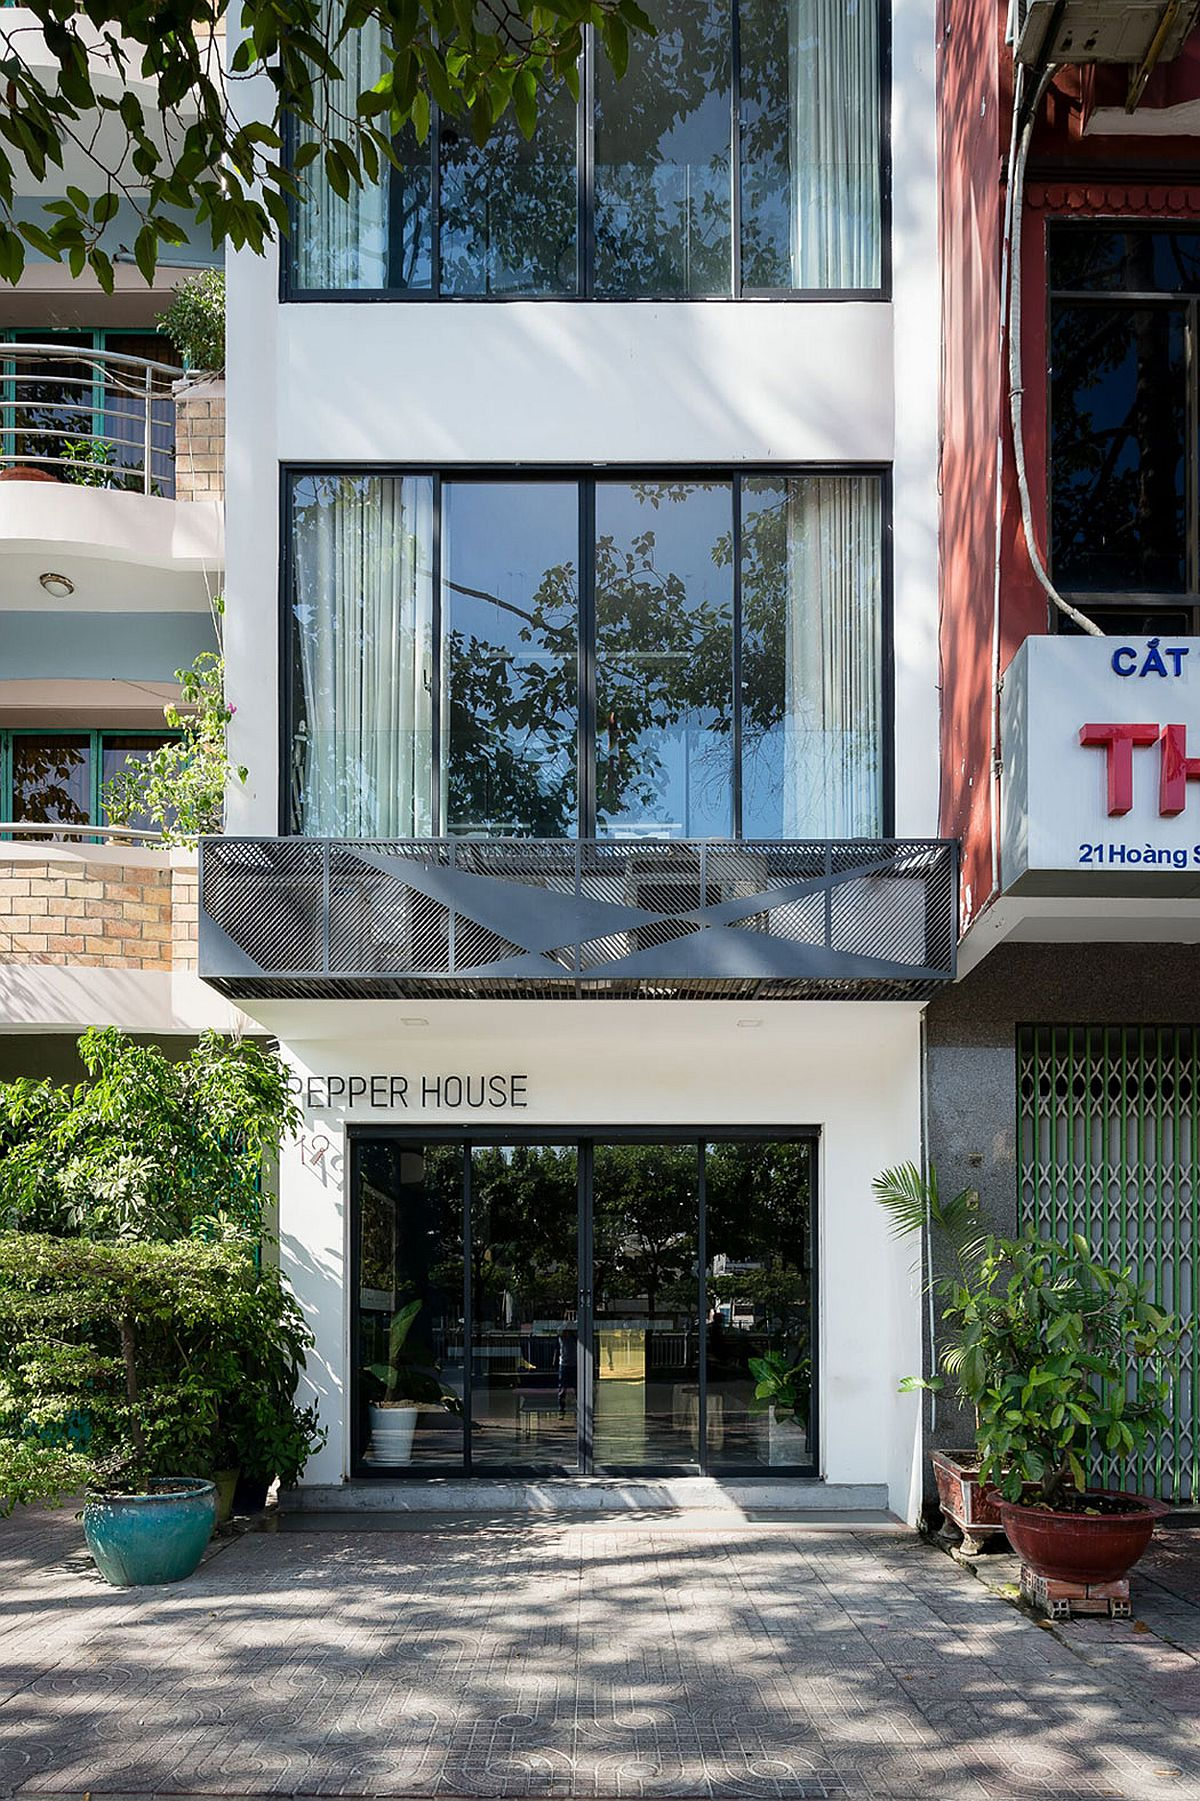 Revamped Pepper House in Ho Chi Minh City Vietnam Pepper House: A Place to Rest, Rejuvenate and Get Some Work Done